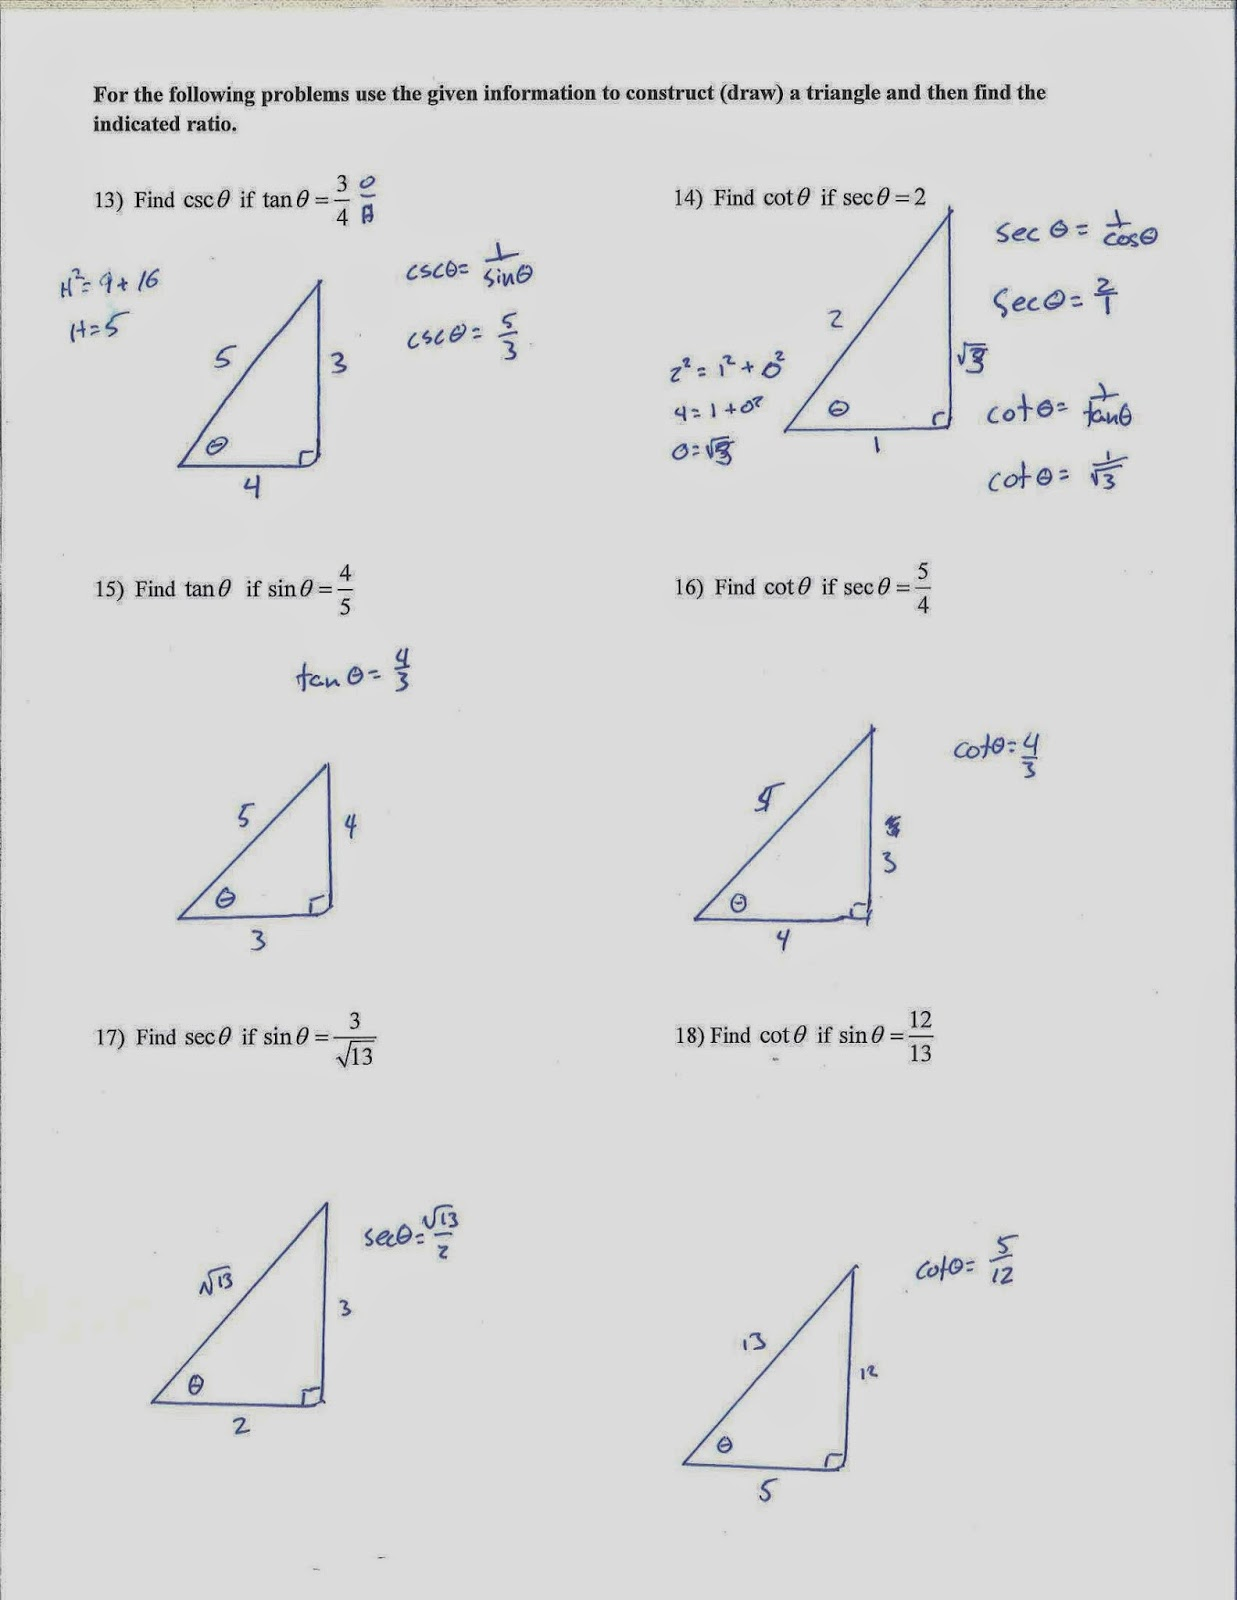 Mr. Doran's Algebra 2: Classwork and Homework 5/13